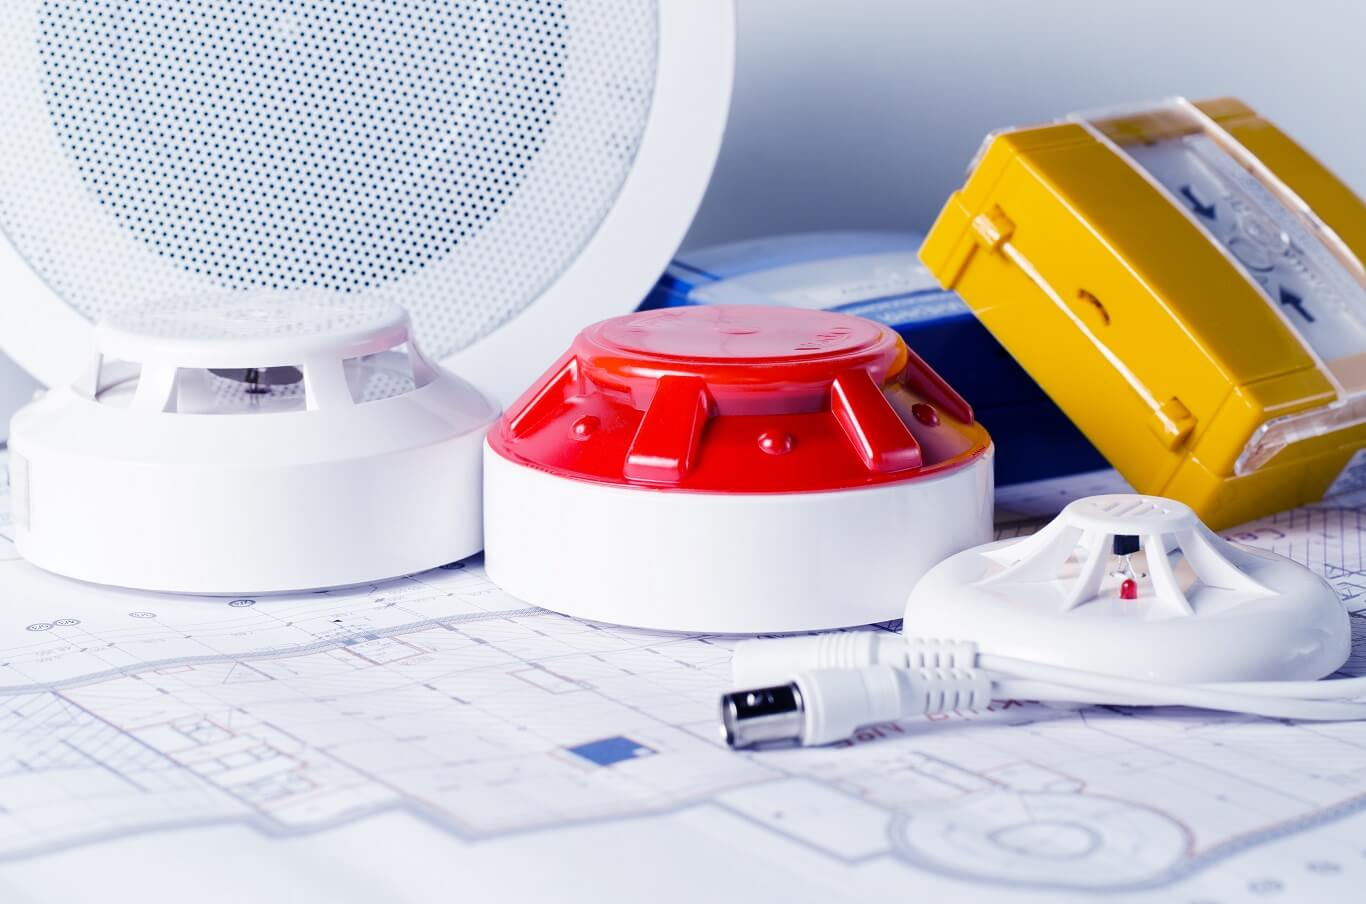 How To Choose The Best Fire Alarm System